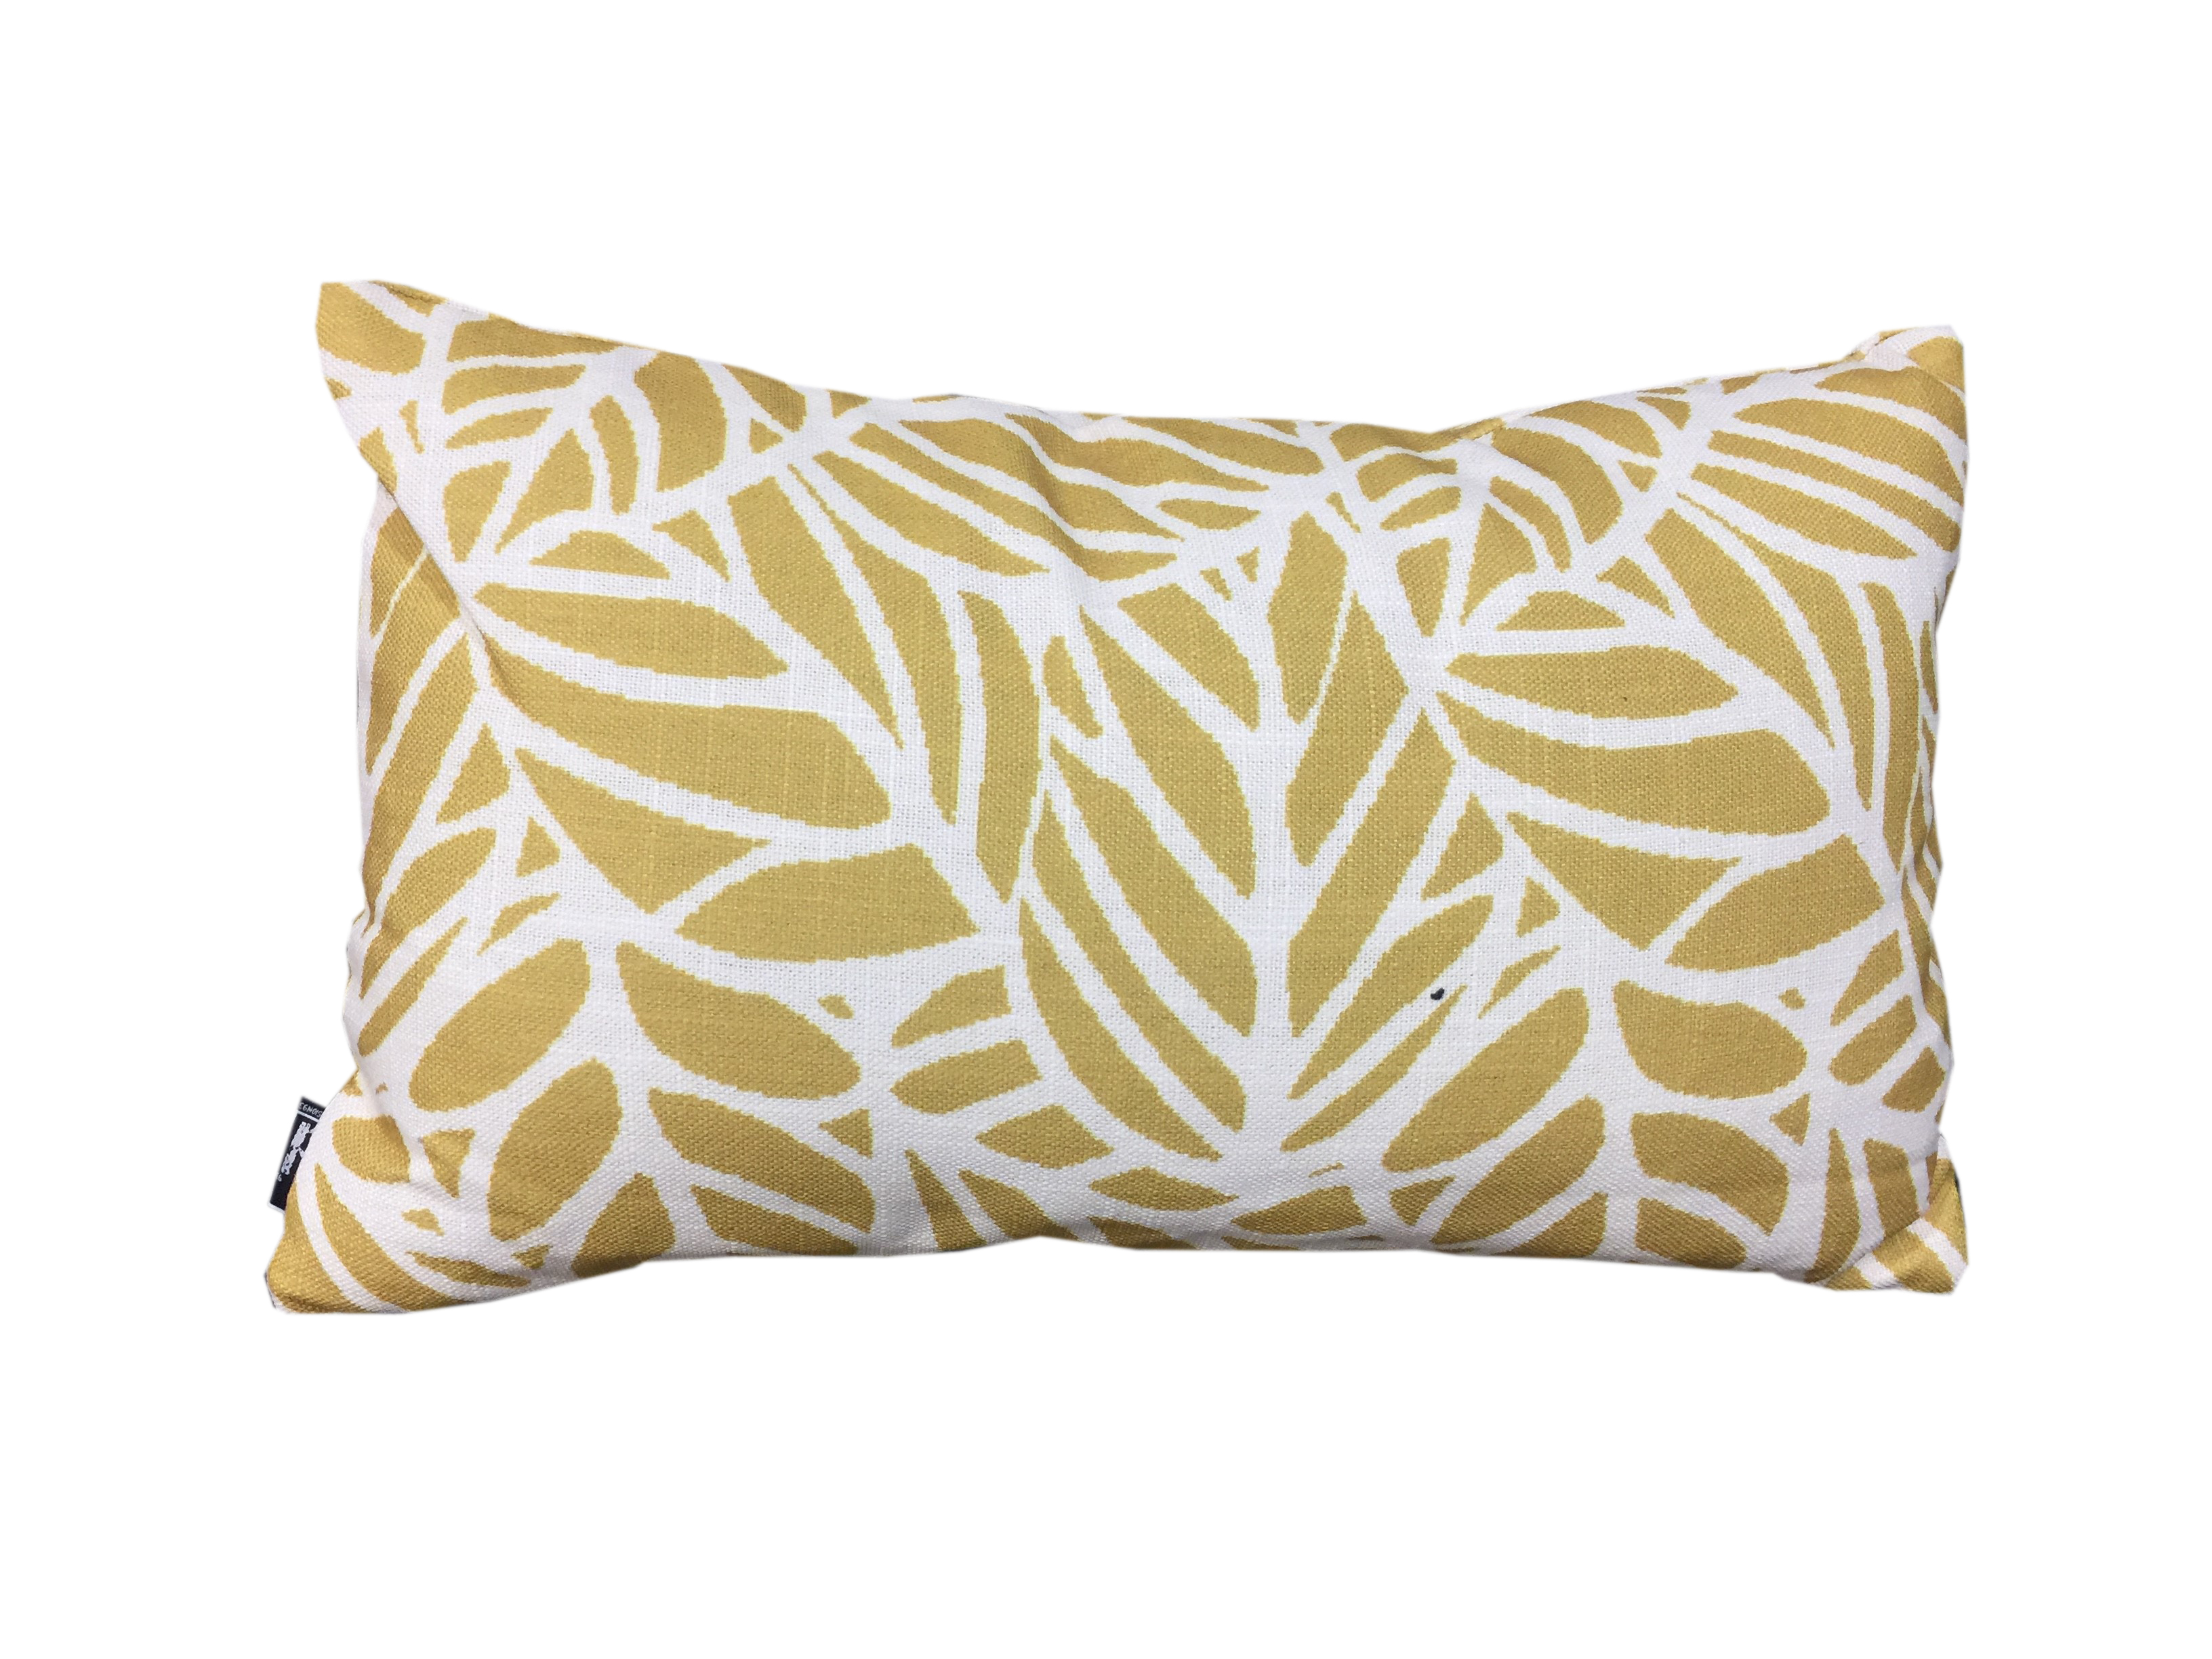 30 x 50 Oblong Cushion - Twig Leaf